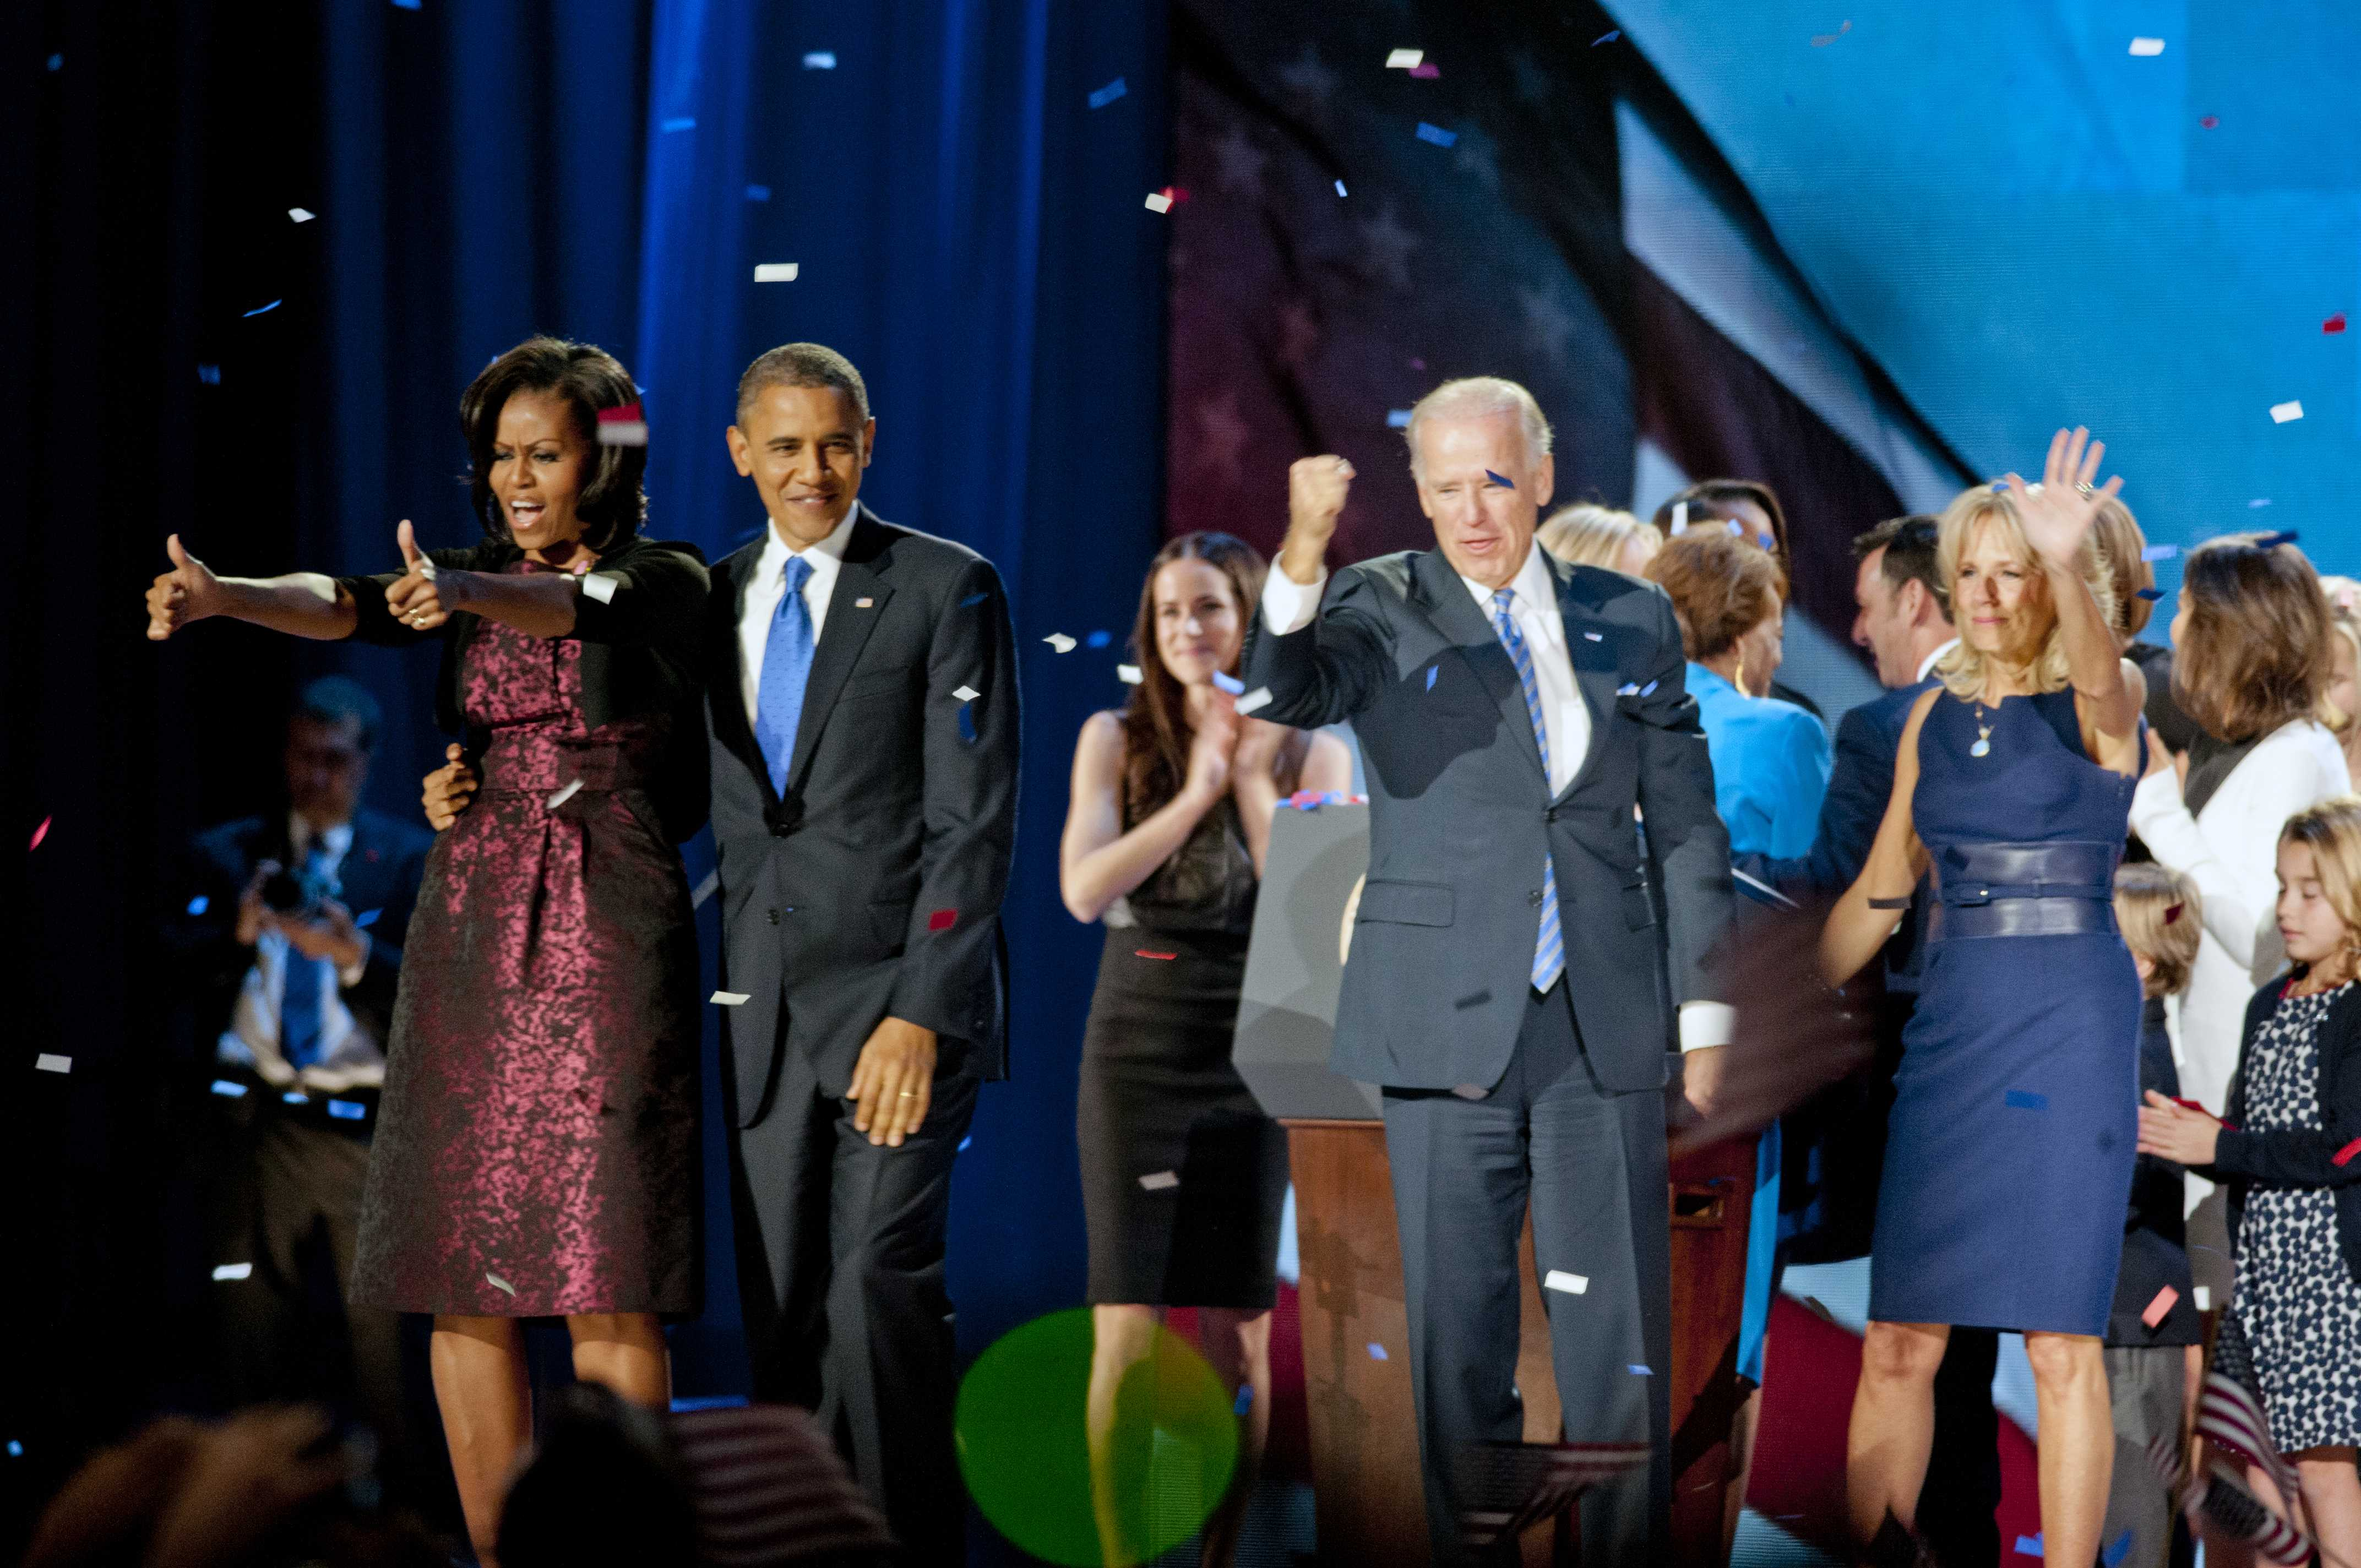 First lady Michelle Obama, President Barack Obama and Vice President Joe Biden (left to right in foreground) greet supporters at an Election Night watch party at McCormick Place in Chicago. The president was elected to a second term Tuesday;